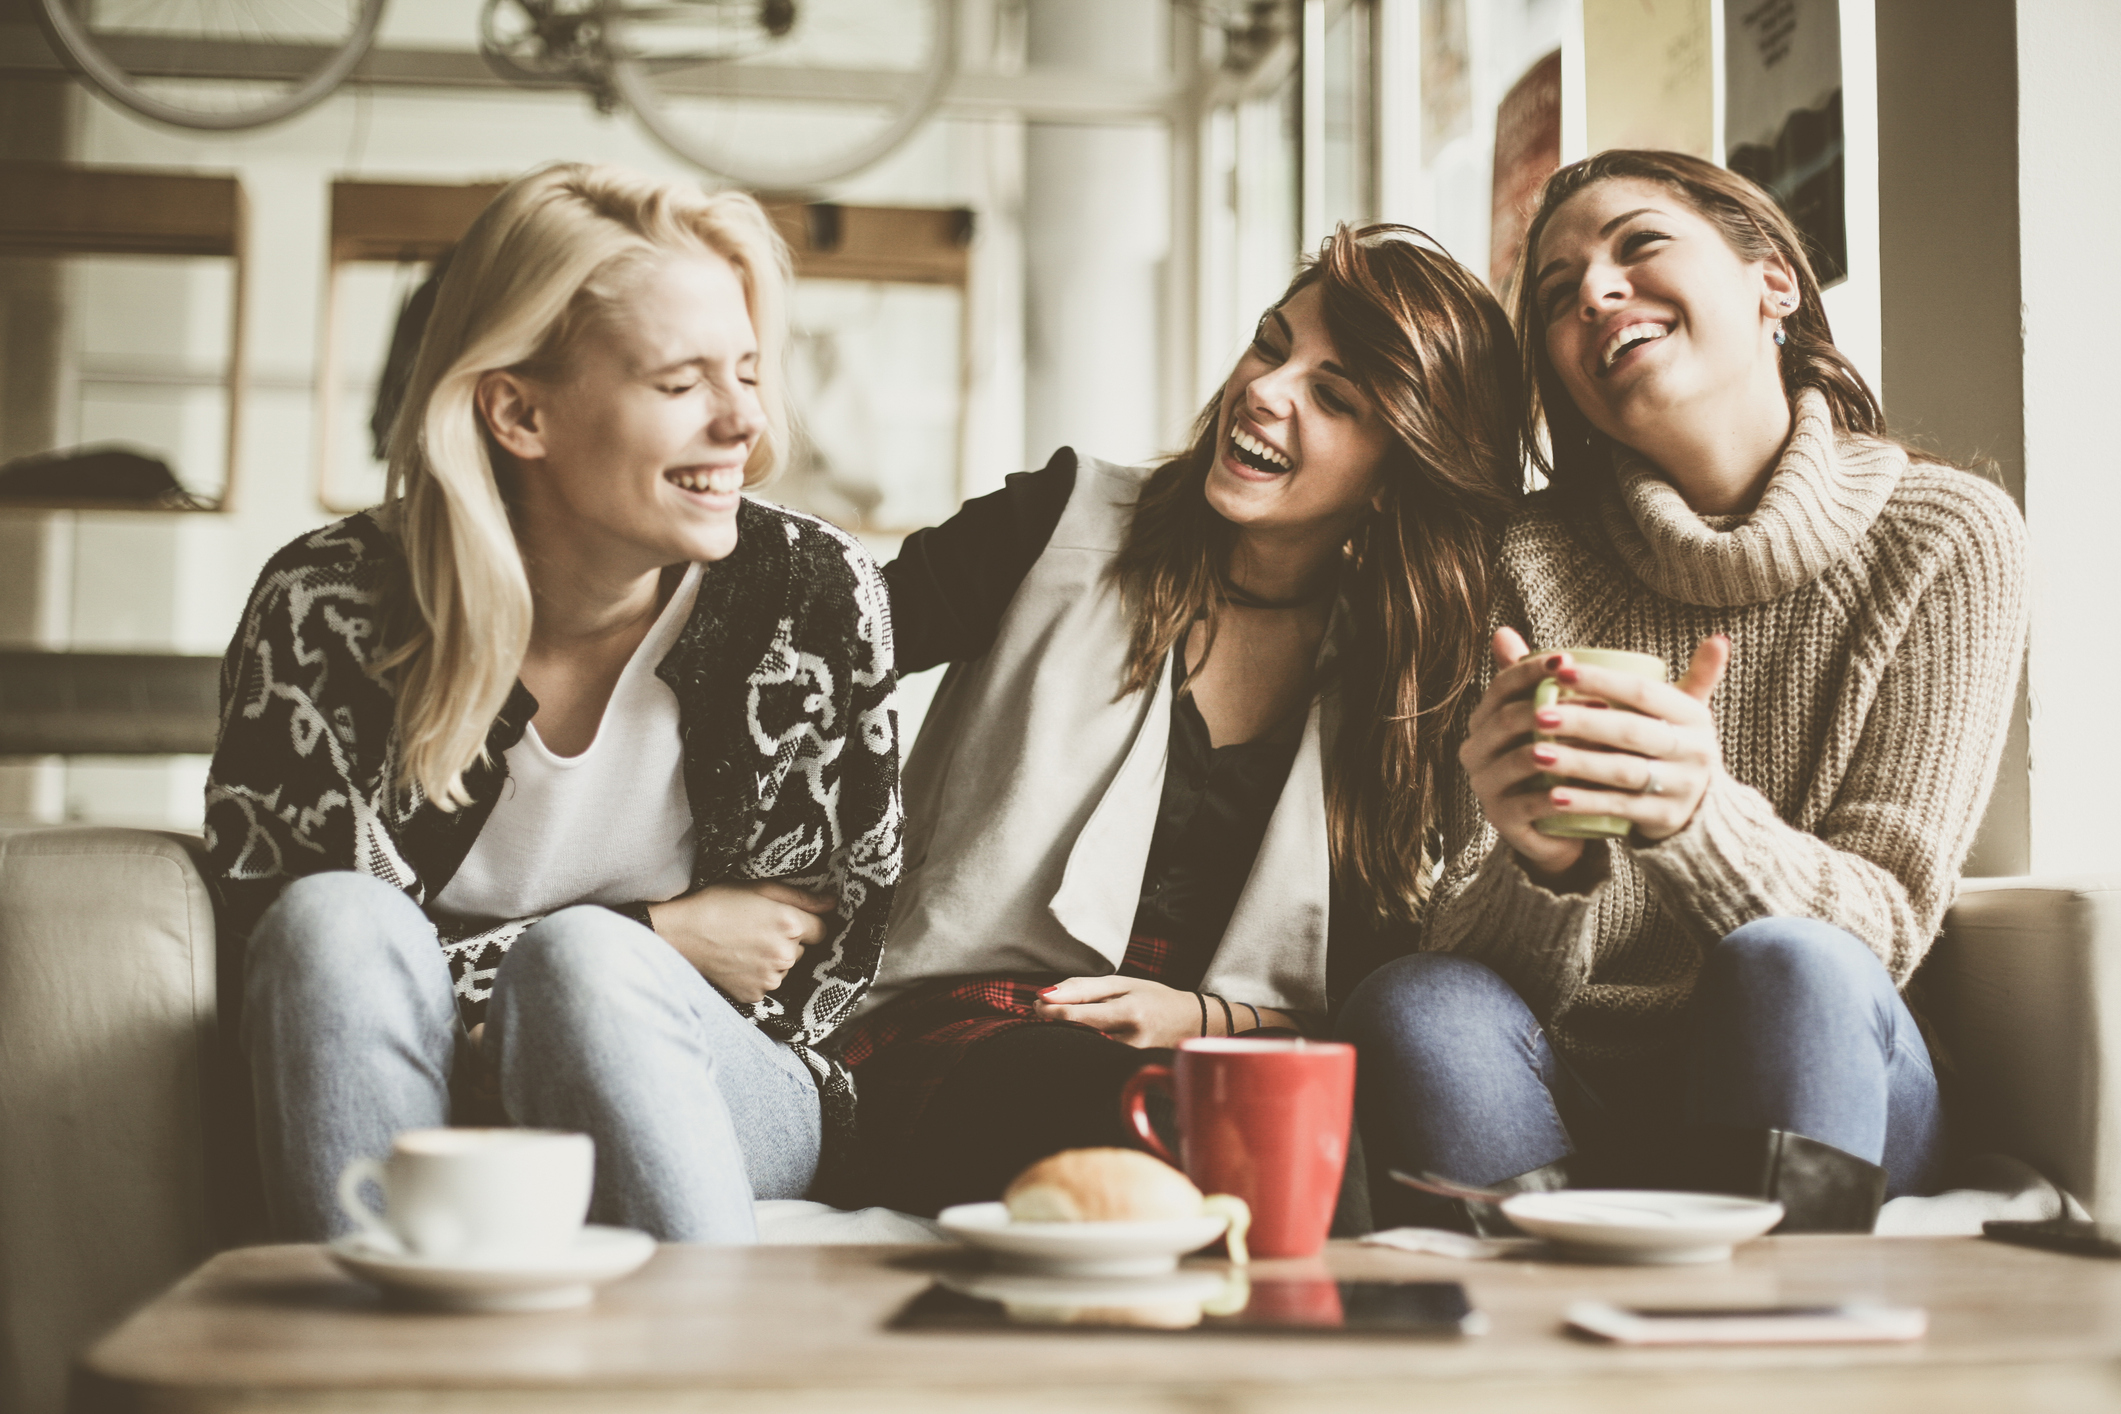 women chatting and laughing in a coffee shop